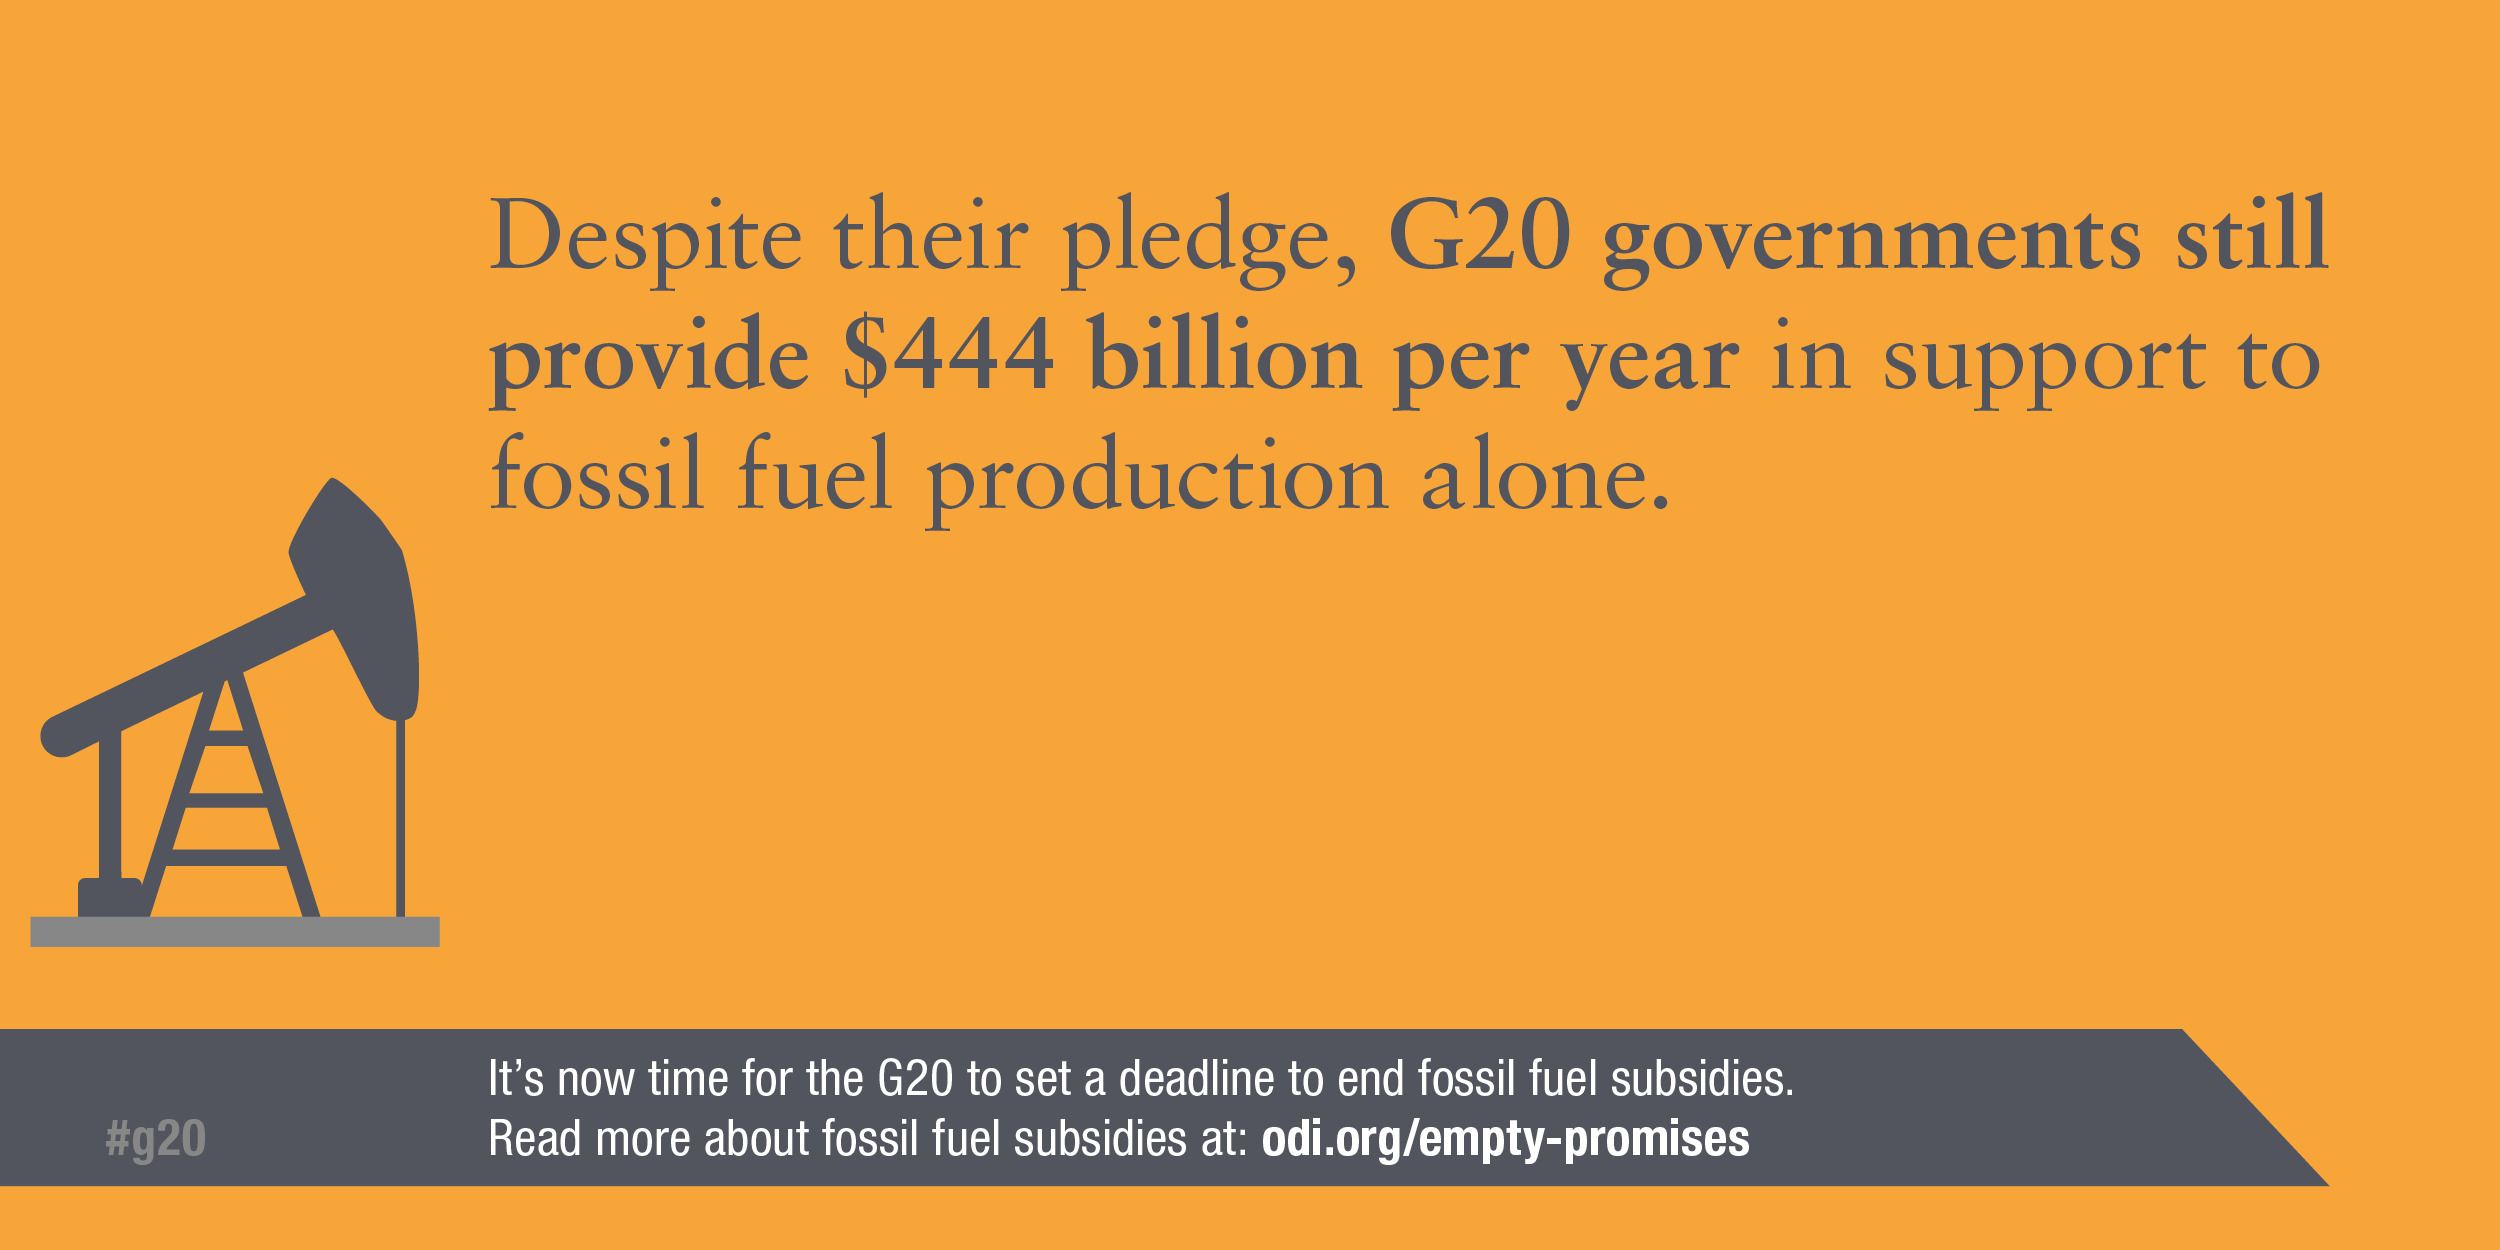 Infographic: G20 governments provide $444 billion per year to support fossil fuel production